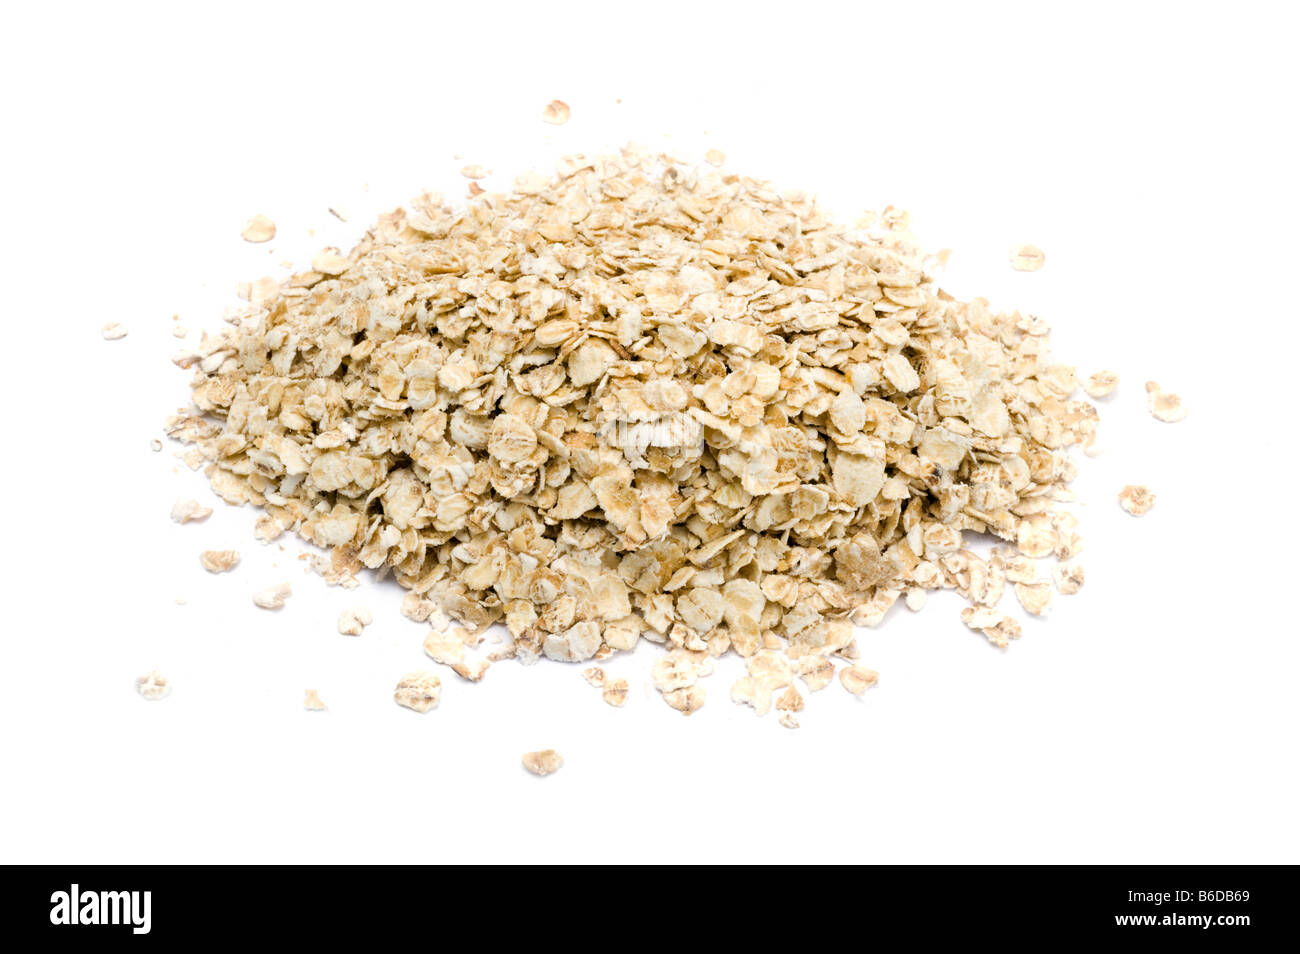 Pile of rolled oats - Stock Image